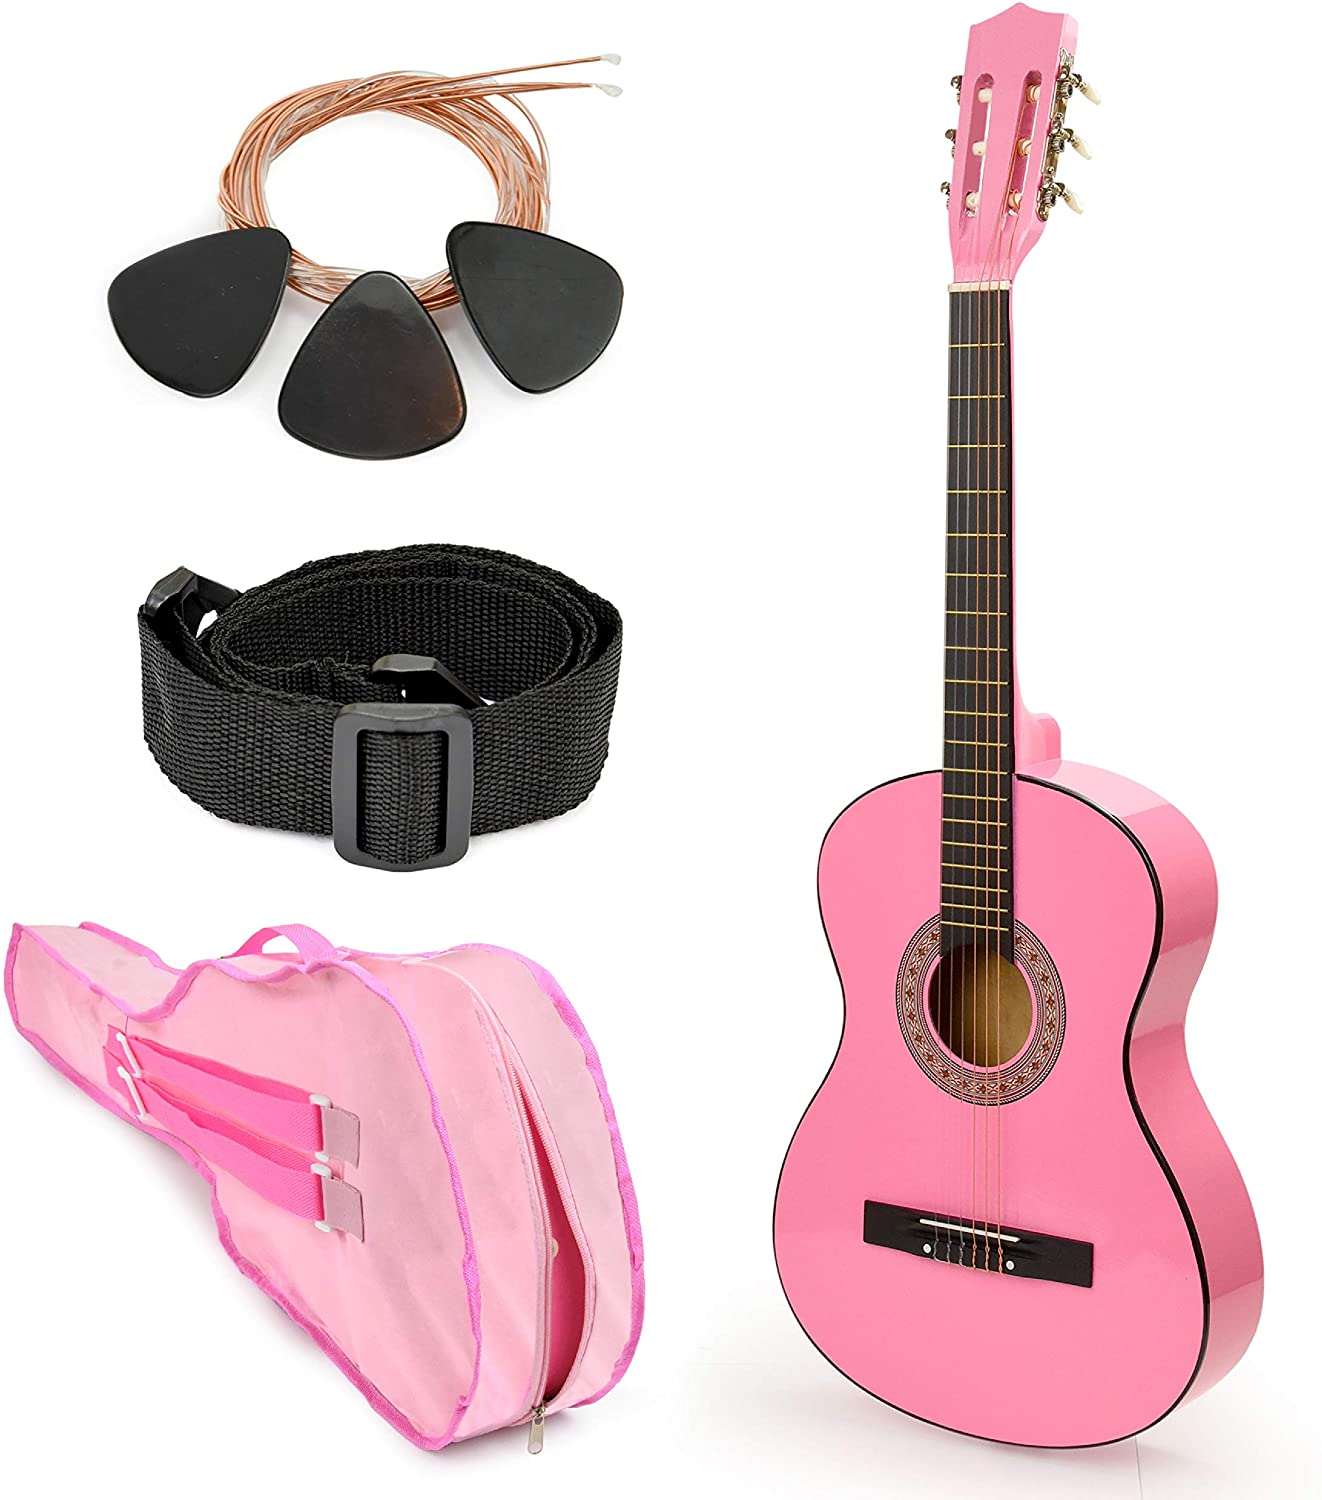 Pink Wood Guitar with Case and Accessories Great Gift for Kids/Girls/Beginners (38